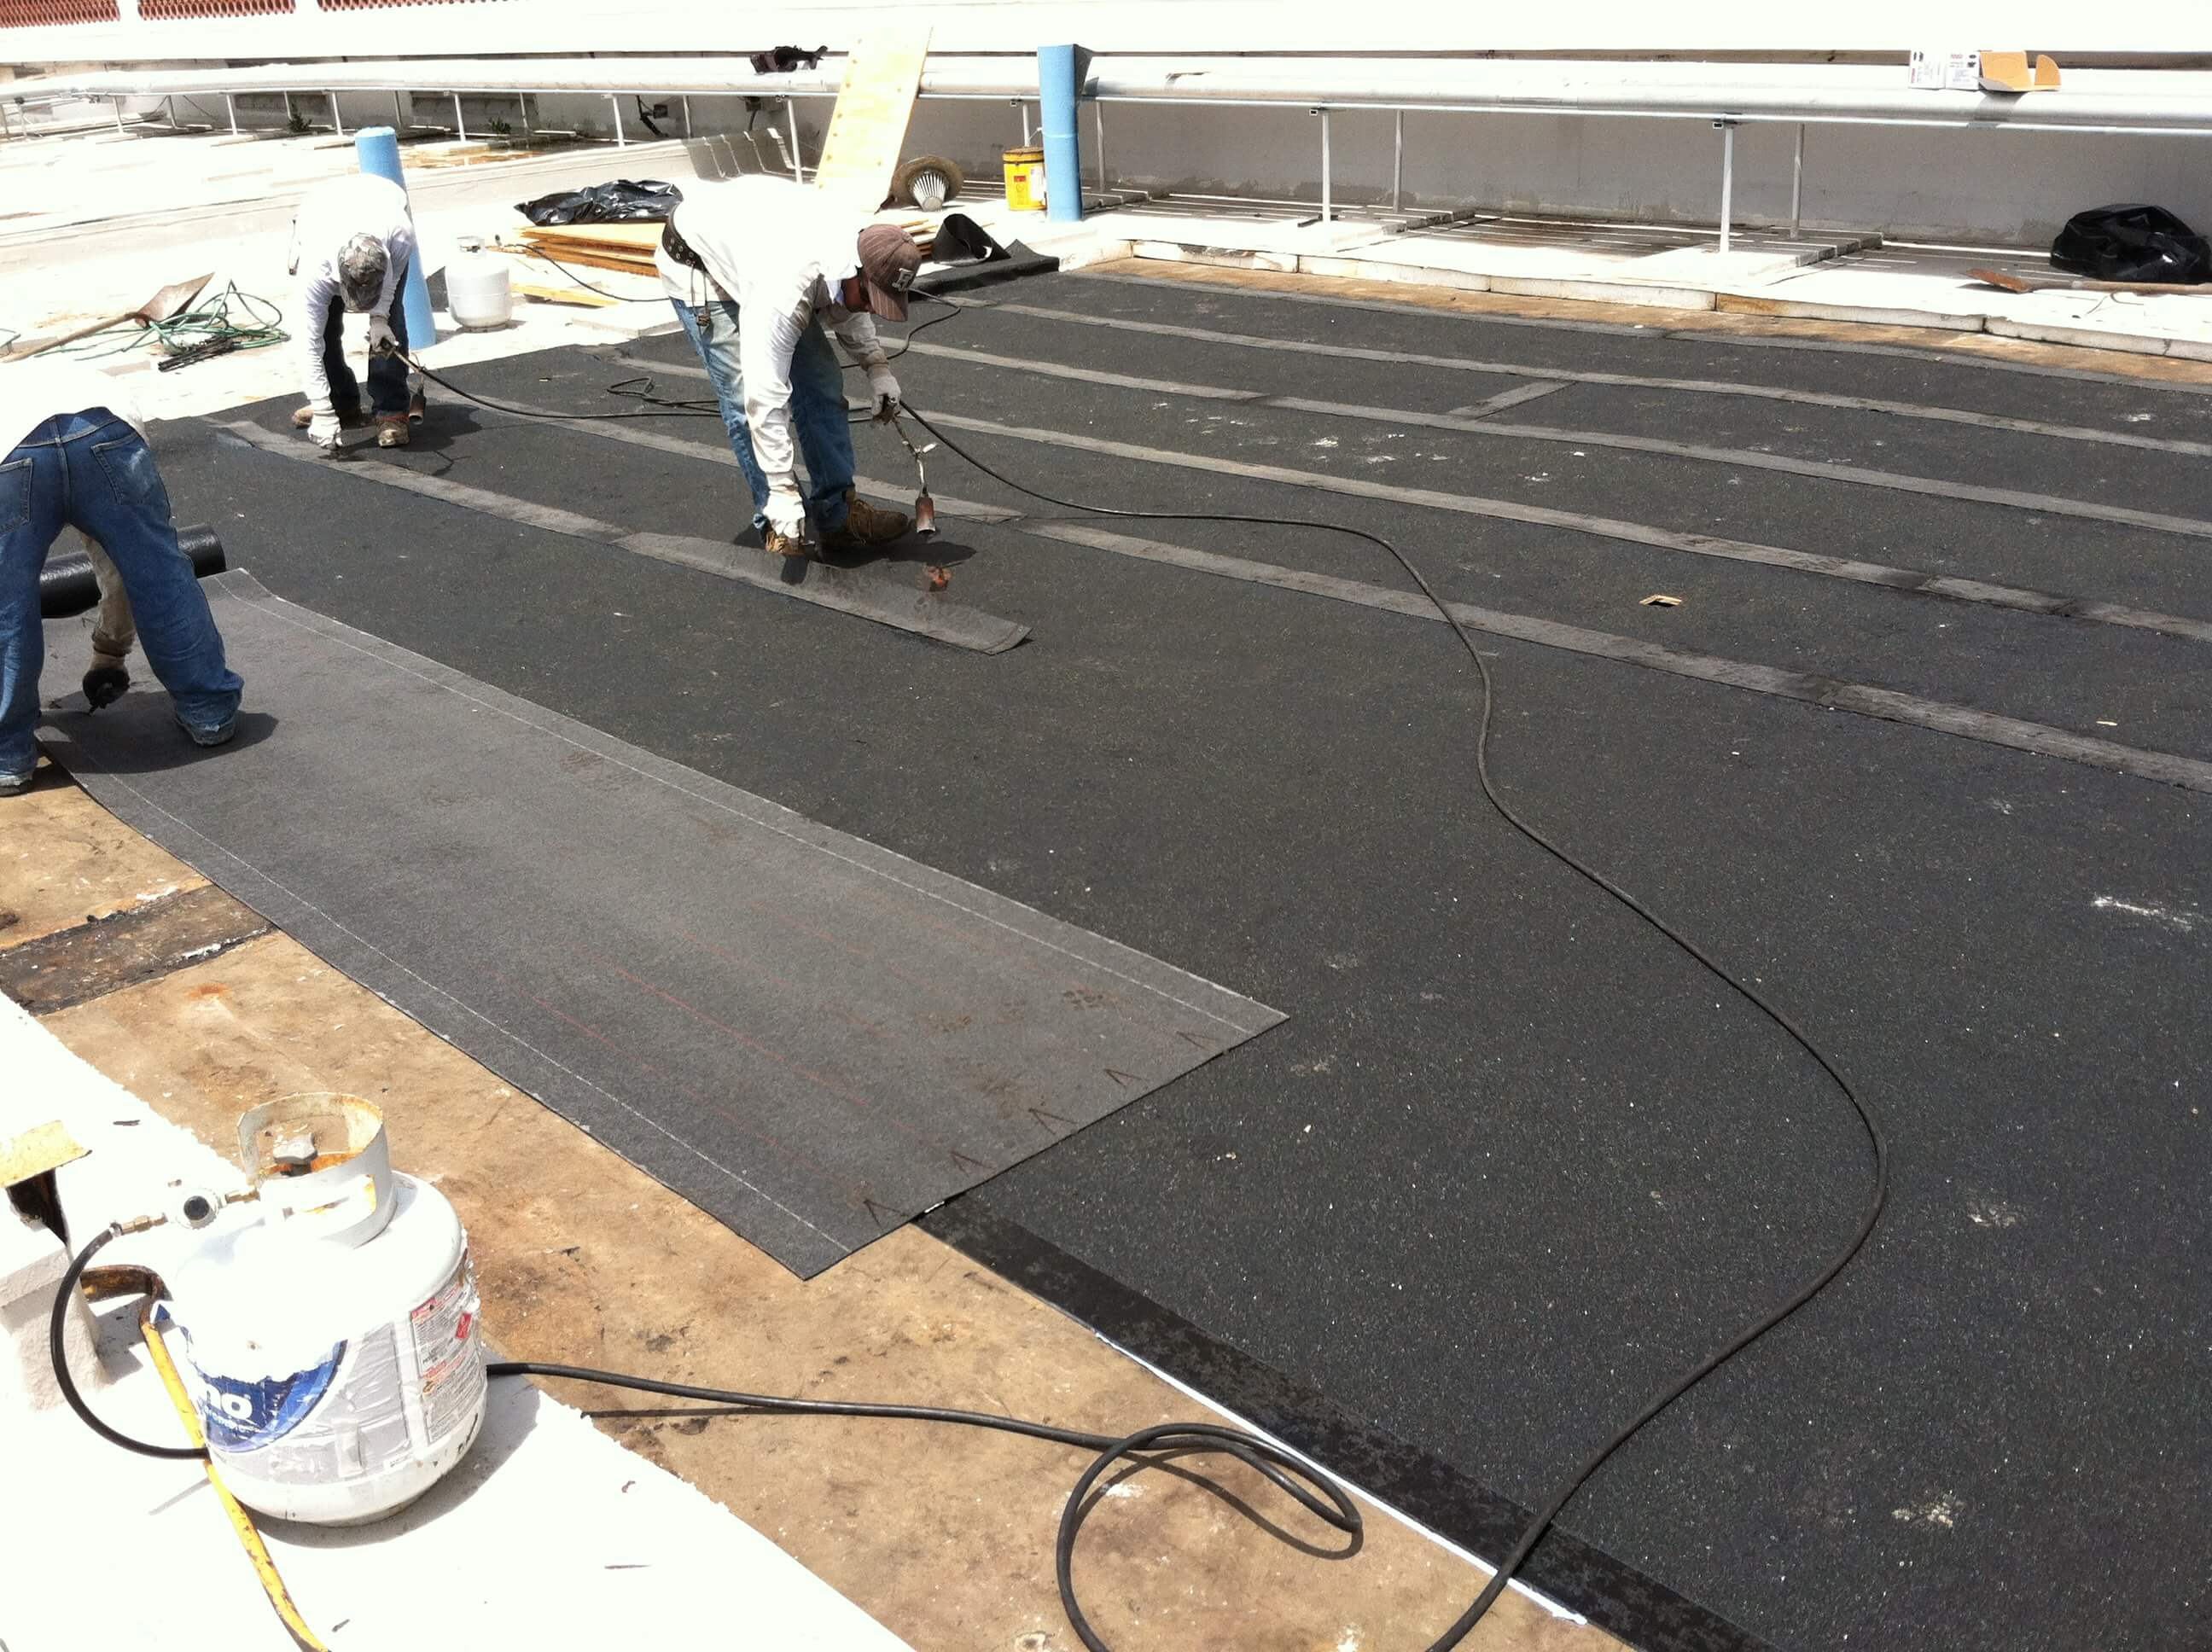 Tacking down the roof's underlayment